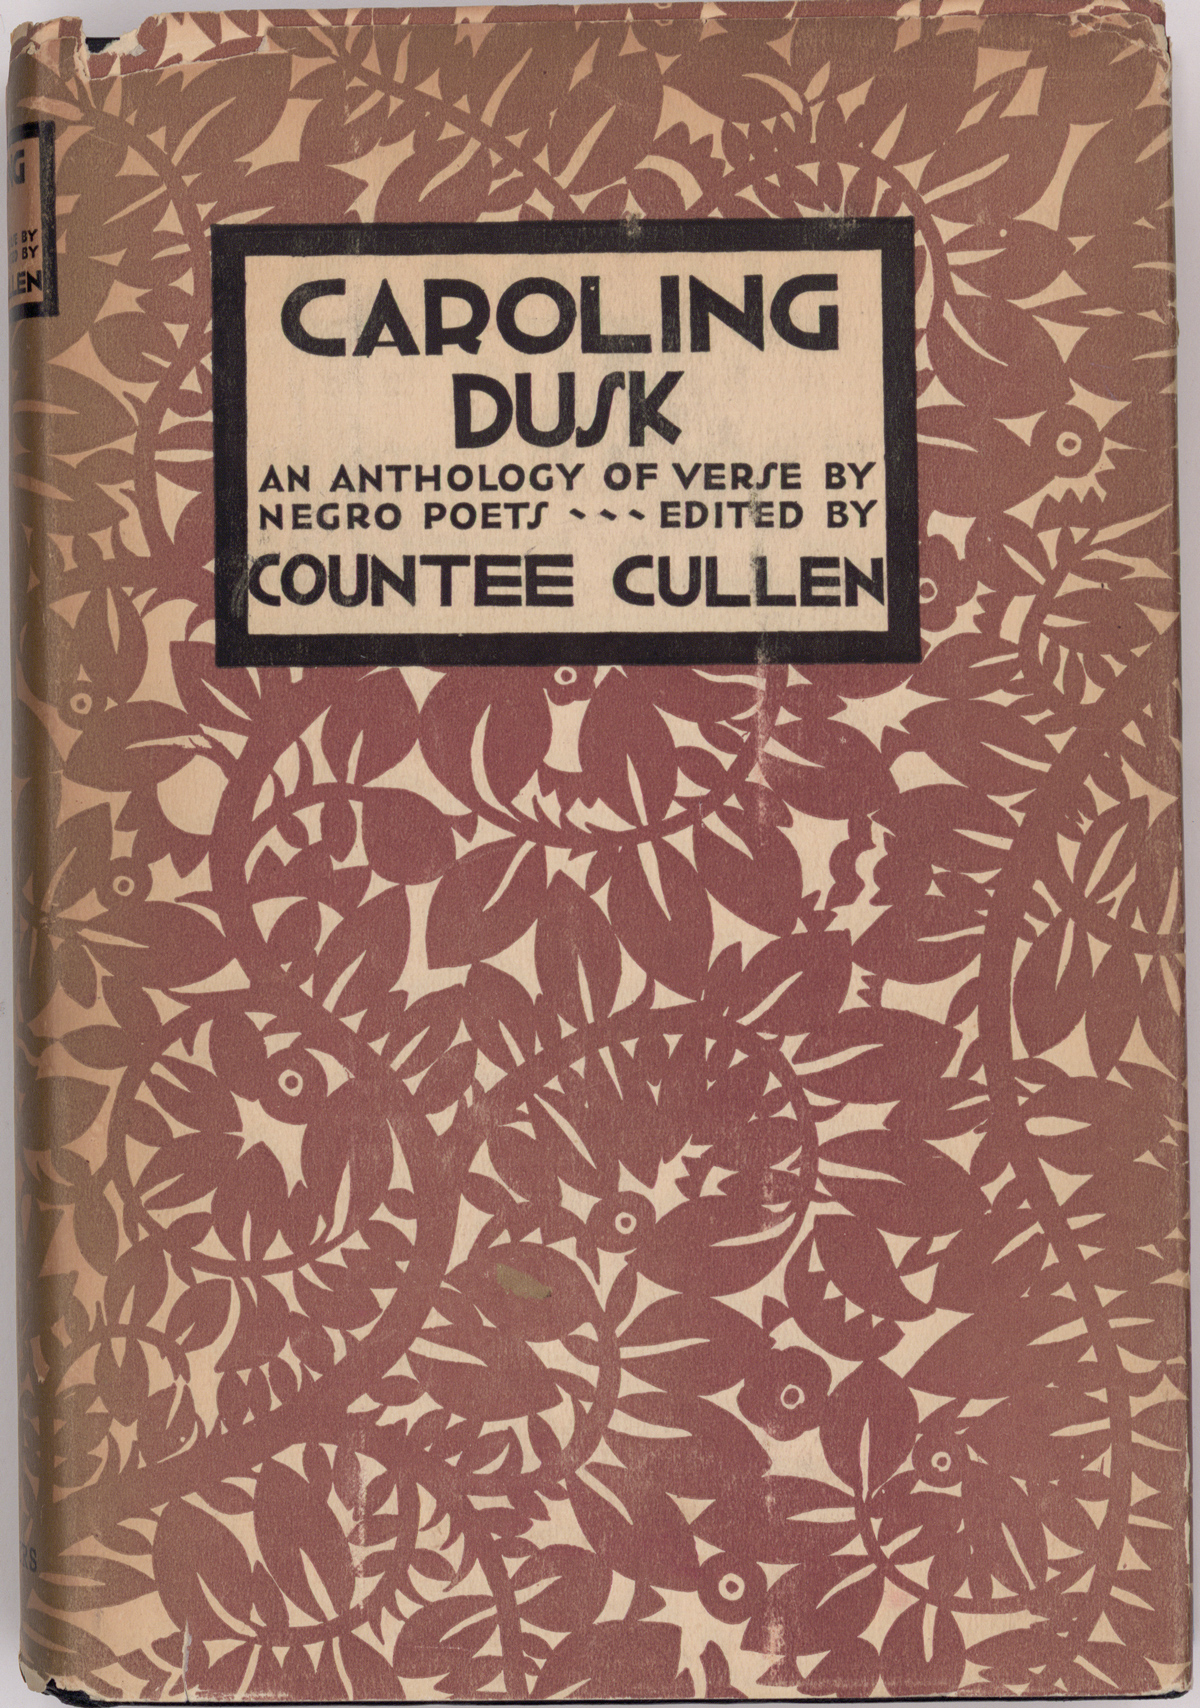 Caroling Dusk, An Anthology of Verse by Negro Poets, edited by Countée Cullen with decorations by Aaron Douglass (Harper & Brothers, 1927).